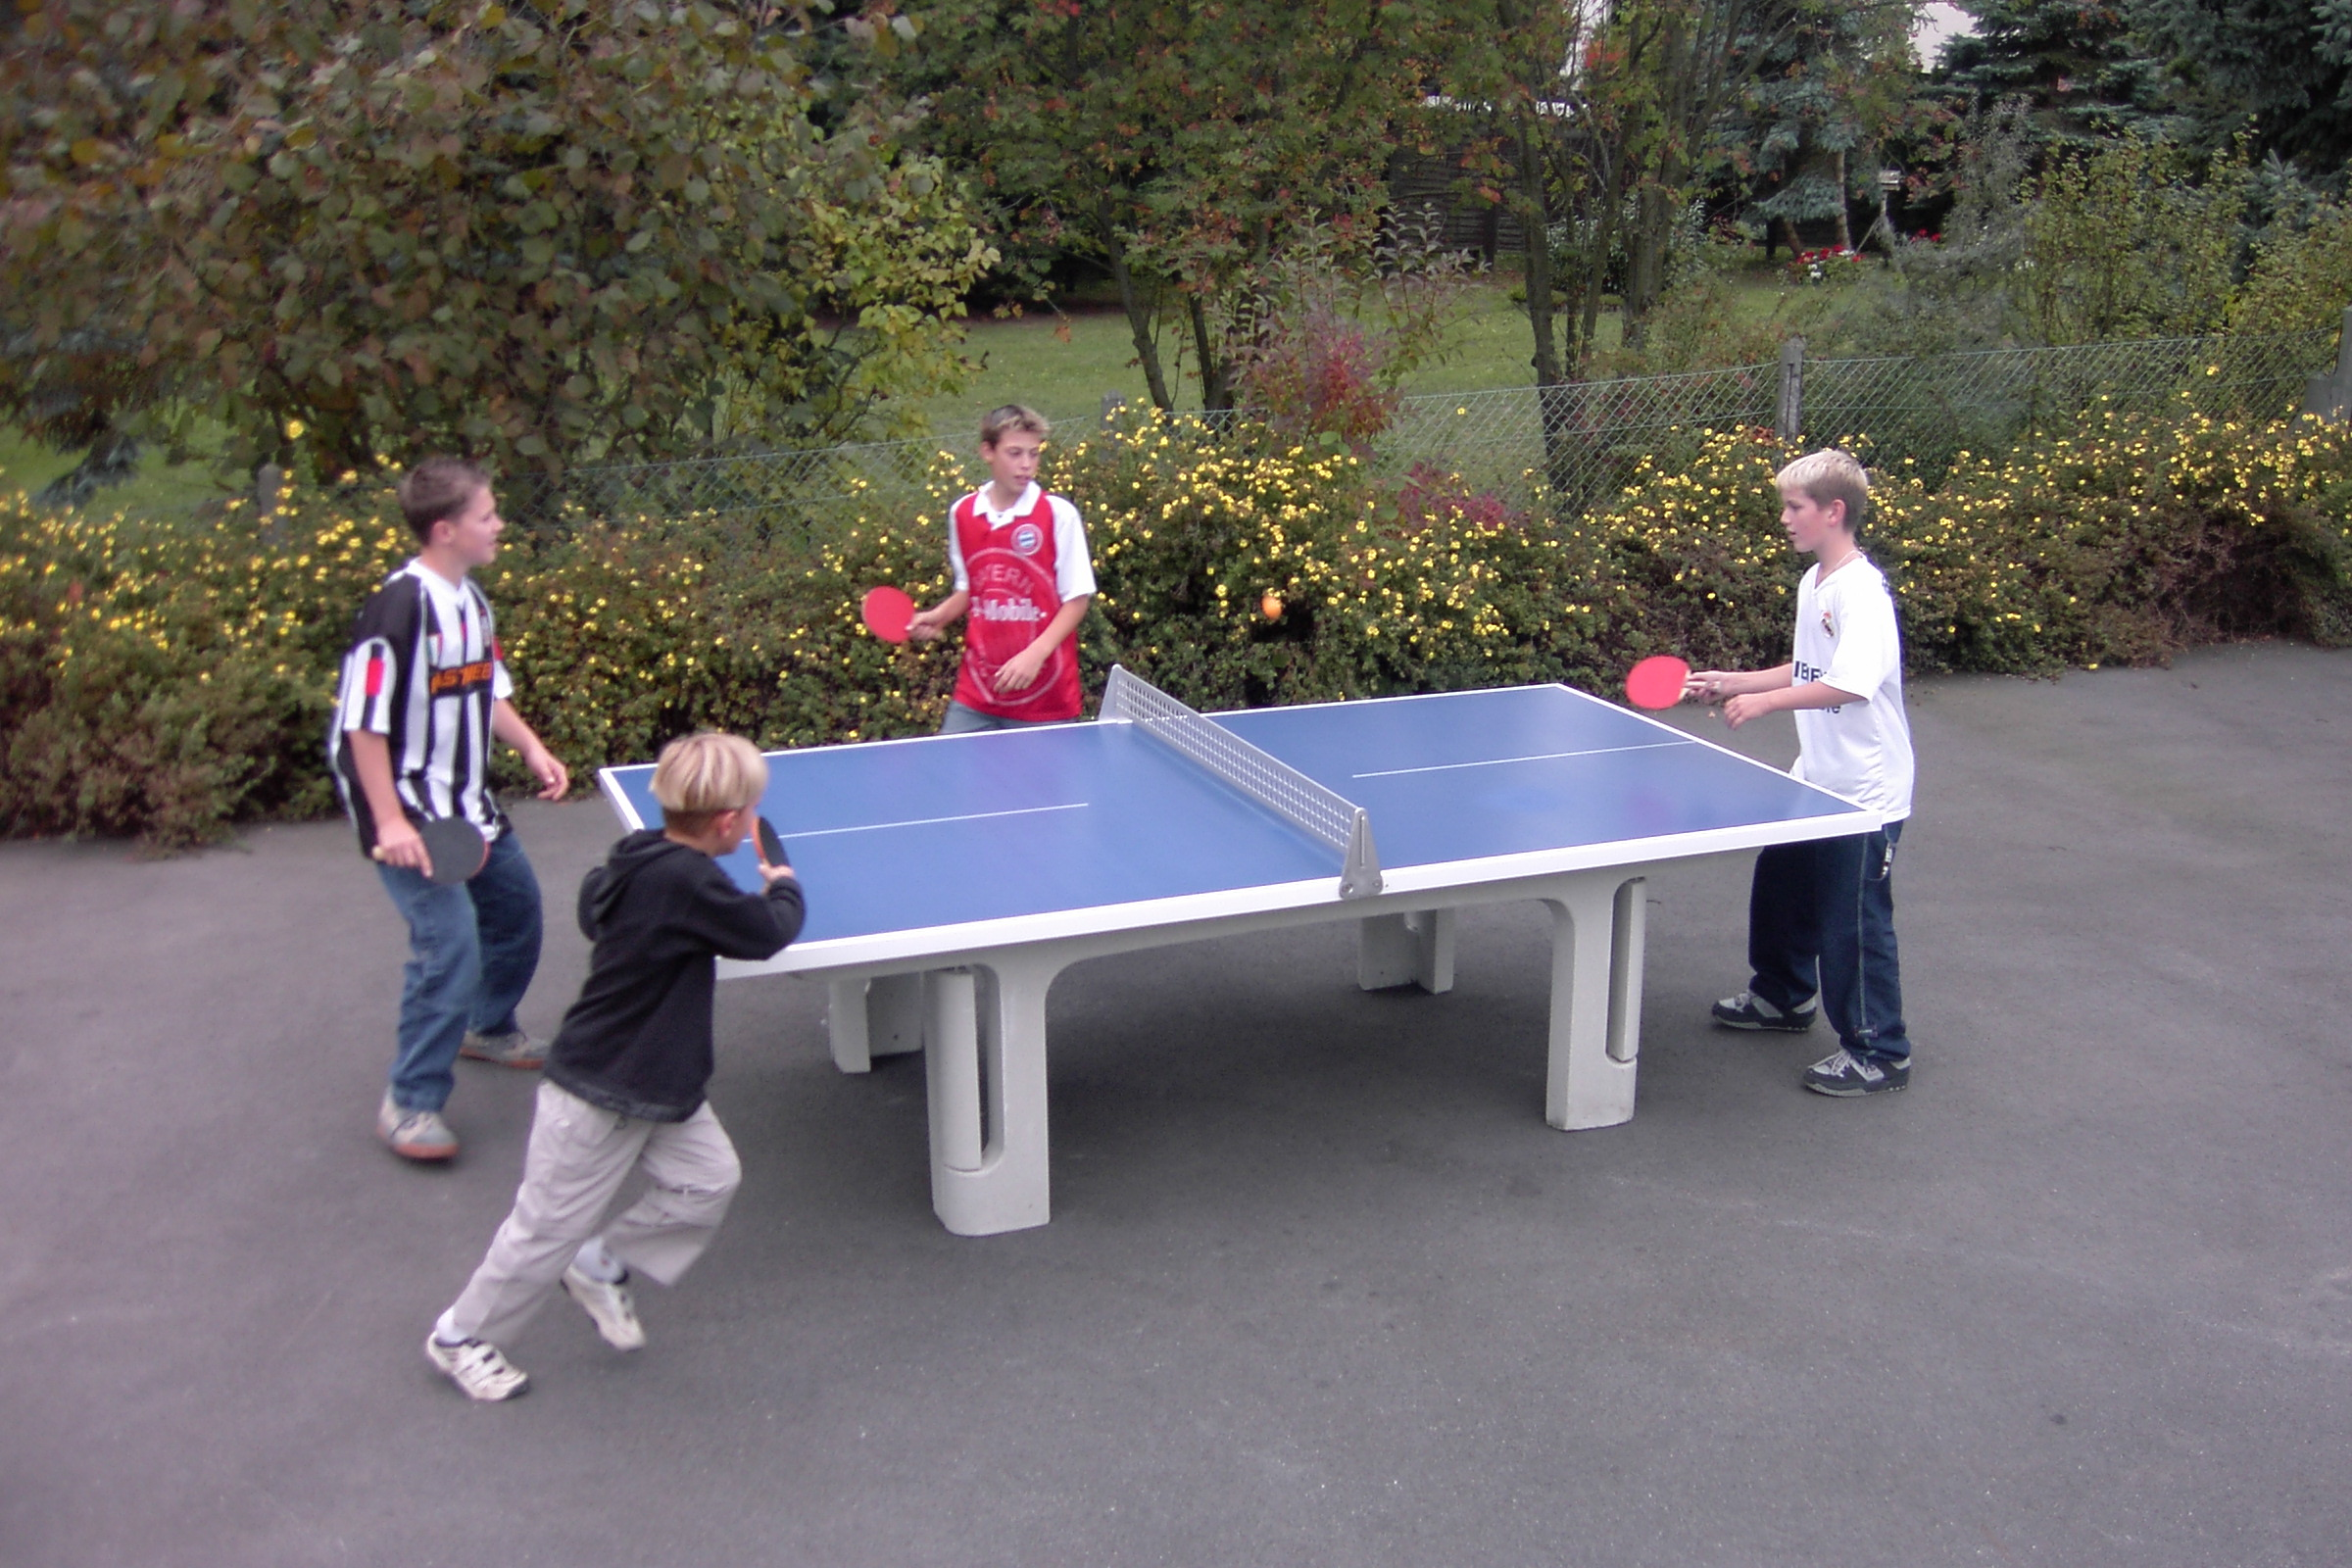 outdoor table tennis goric marketing group usa inc. Black Bedroom Furniture Sets. Home Design Ideas